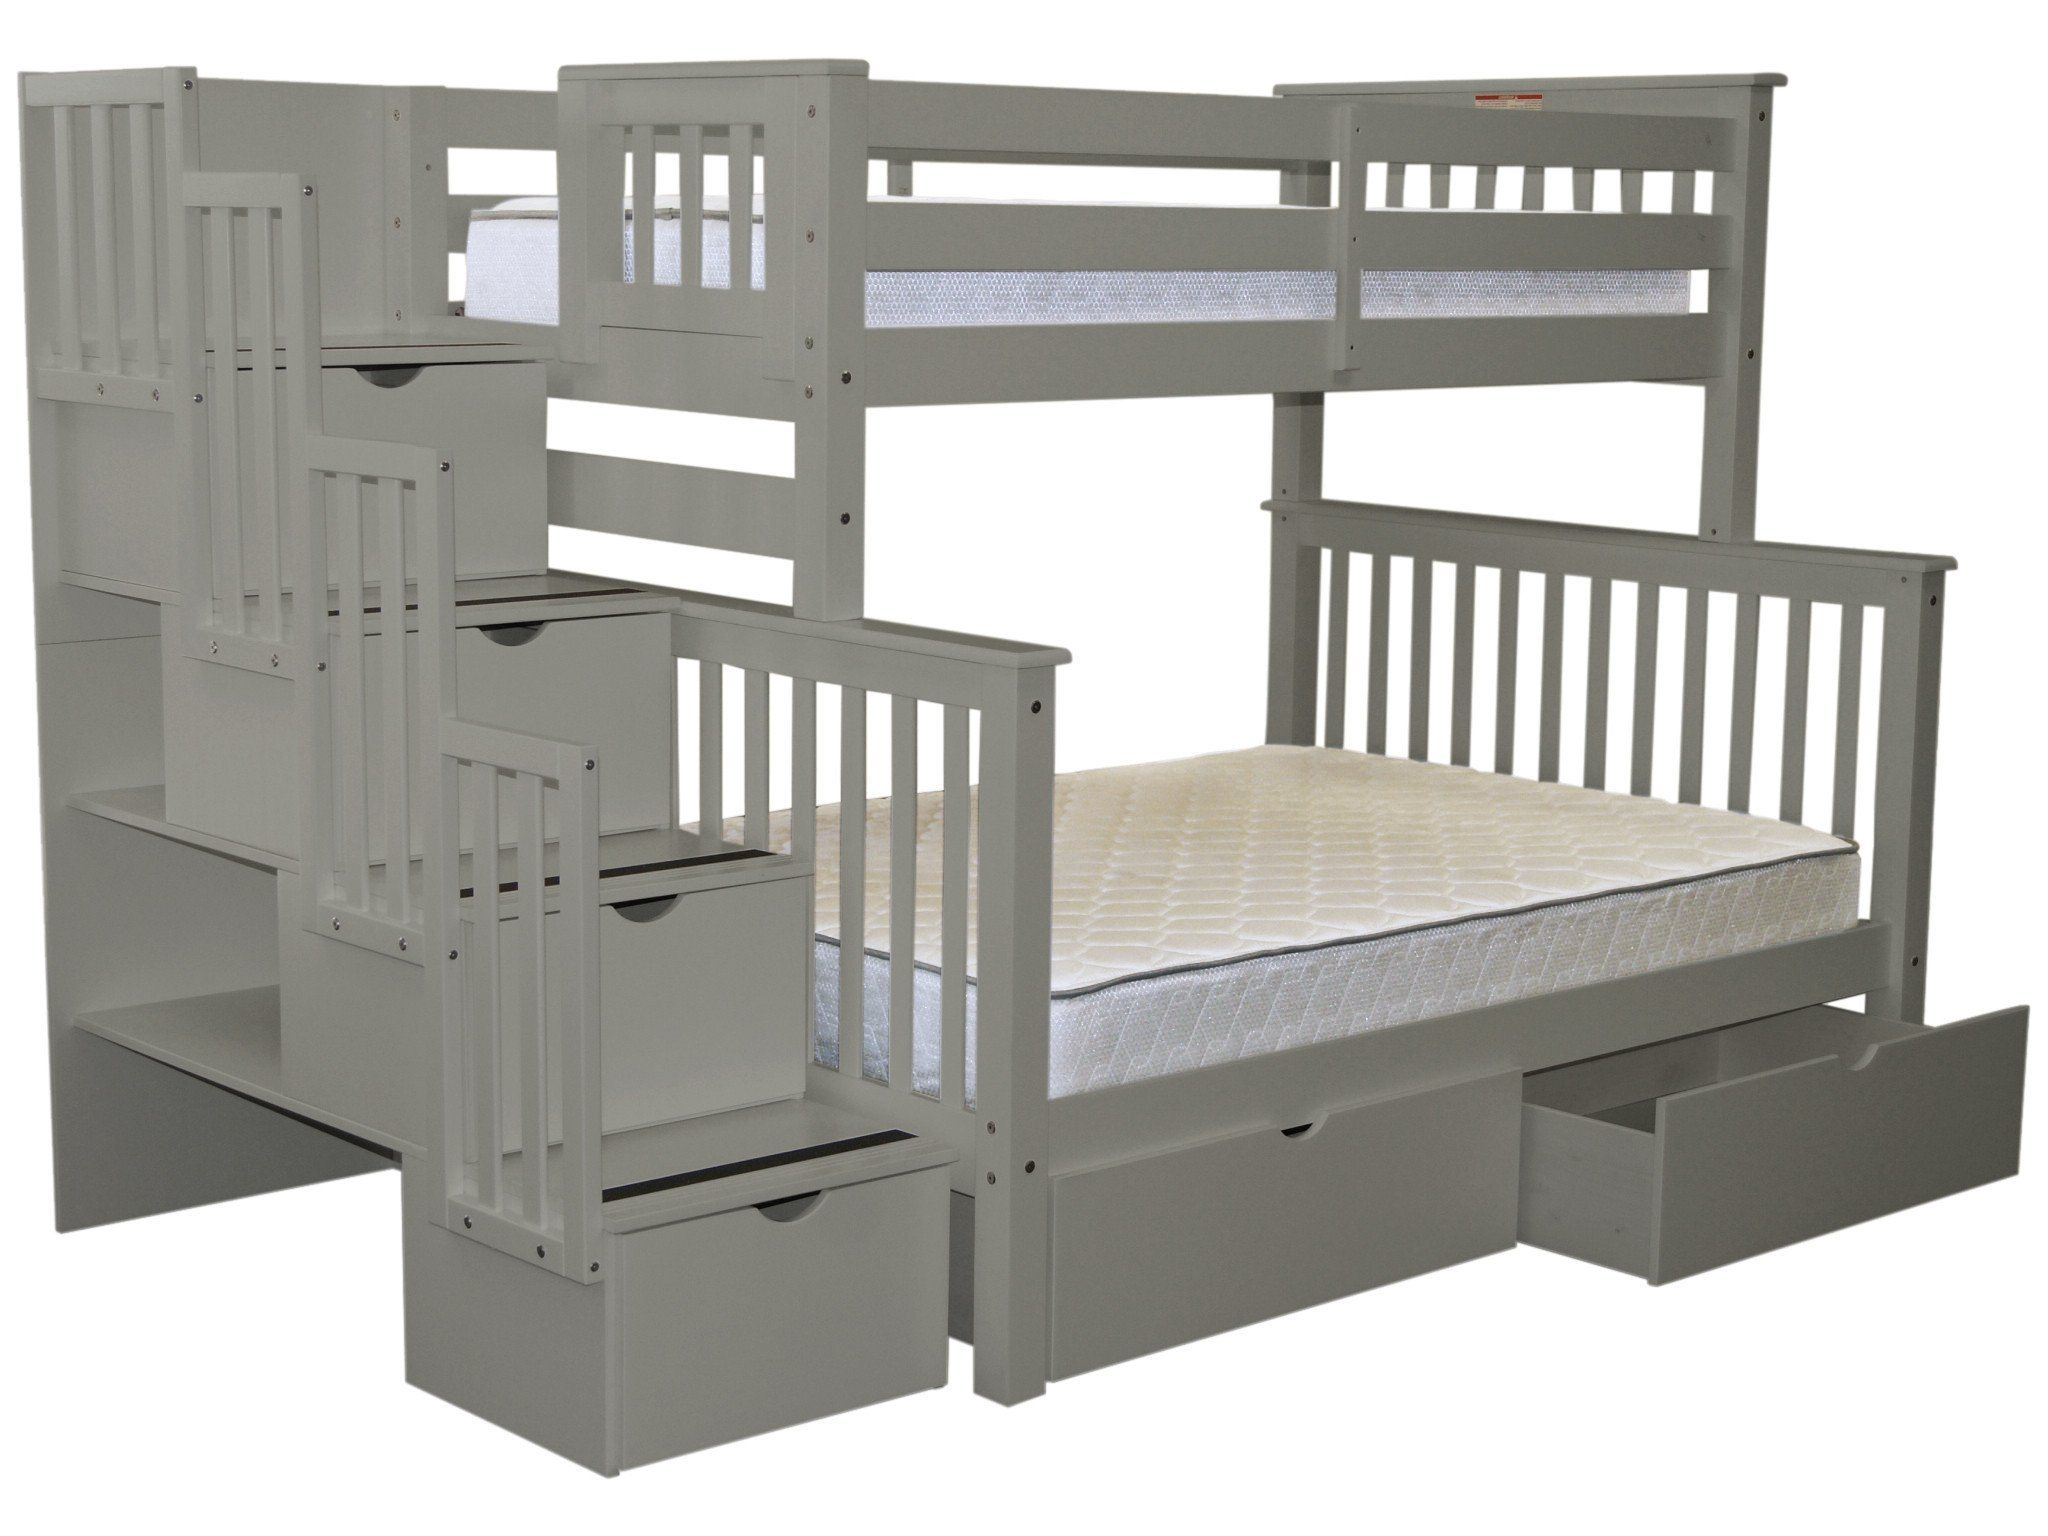 Bedz King Stairway Bunk Beds Twin Over Full With 4 Drawers In The Steps And  2 Under Bed Drawers Gray